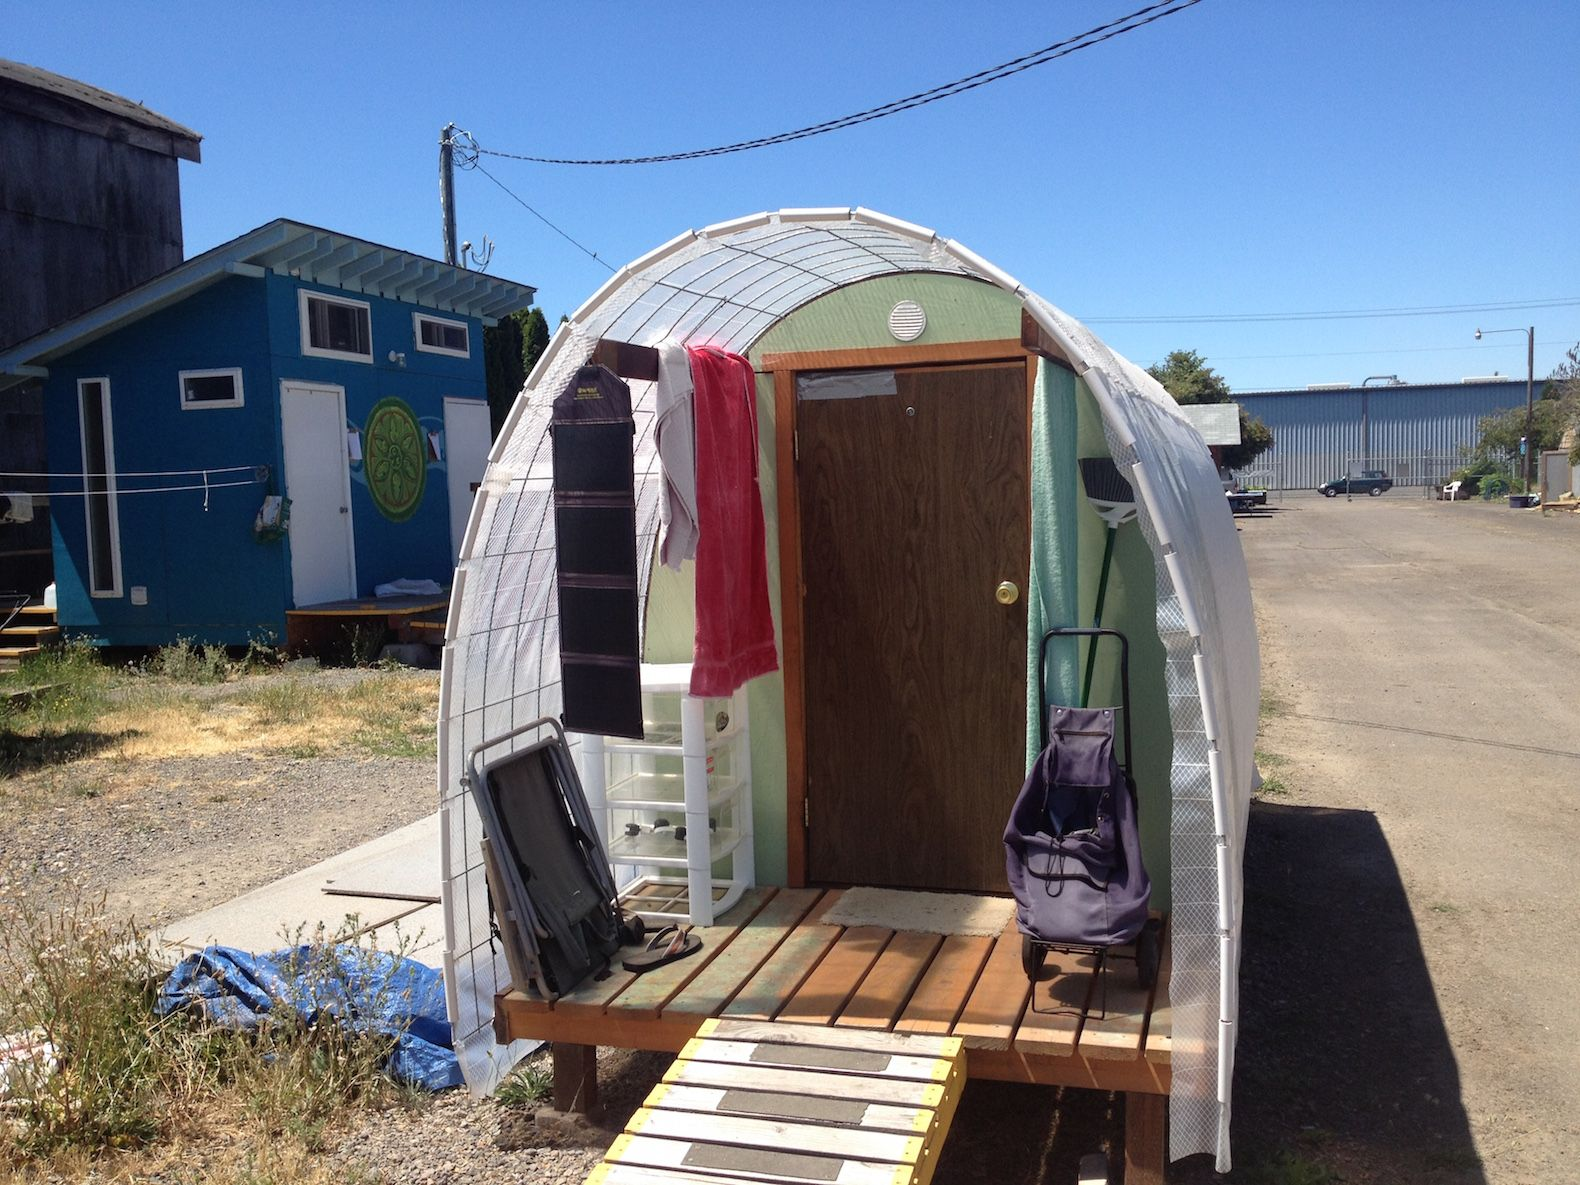 Tiny house village for the homeless goes solar in Oregon Tiny